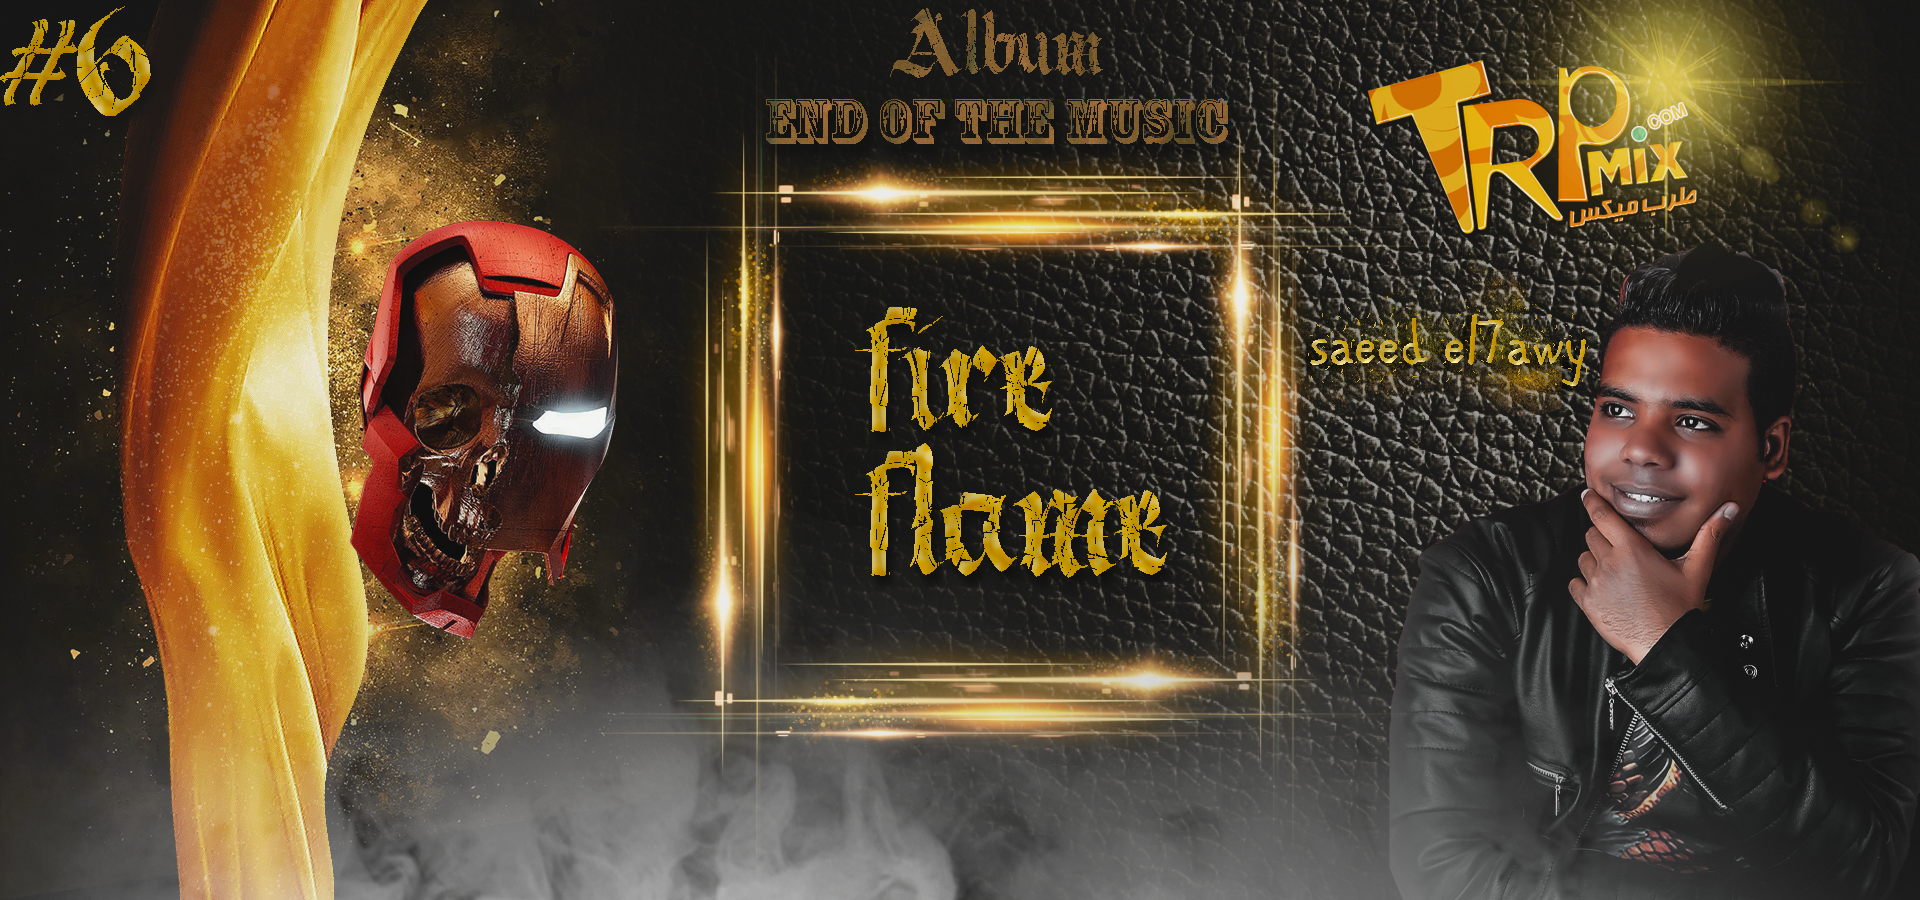 06. music edm trap fire flame _Album end of the music _music distribution_saeed elhawy توزيع سعيد الحاوي 2020